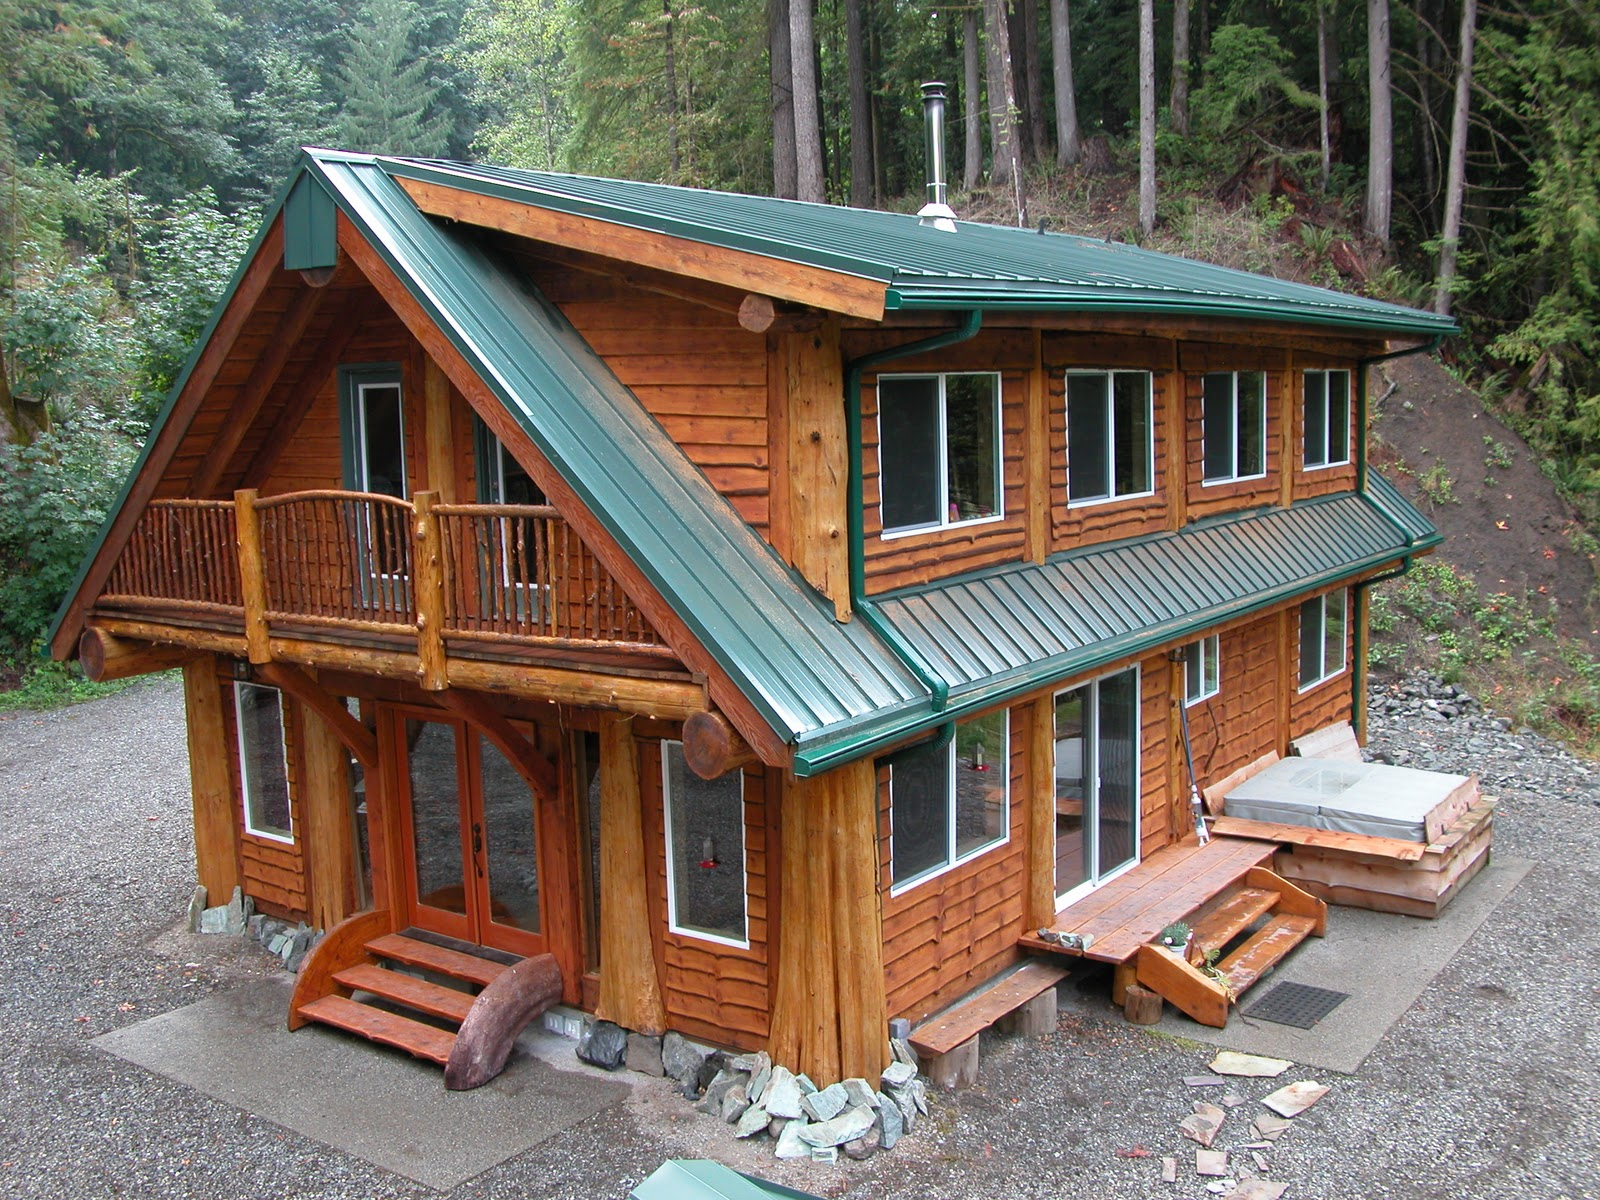 mt in montana hc cabin accommodations honeymoon rentals crystal rainier living room resort alta web cabins lodging